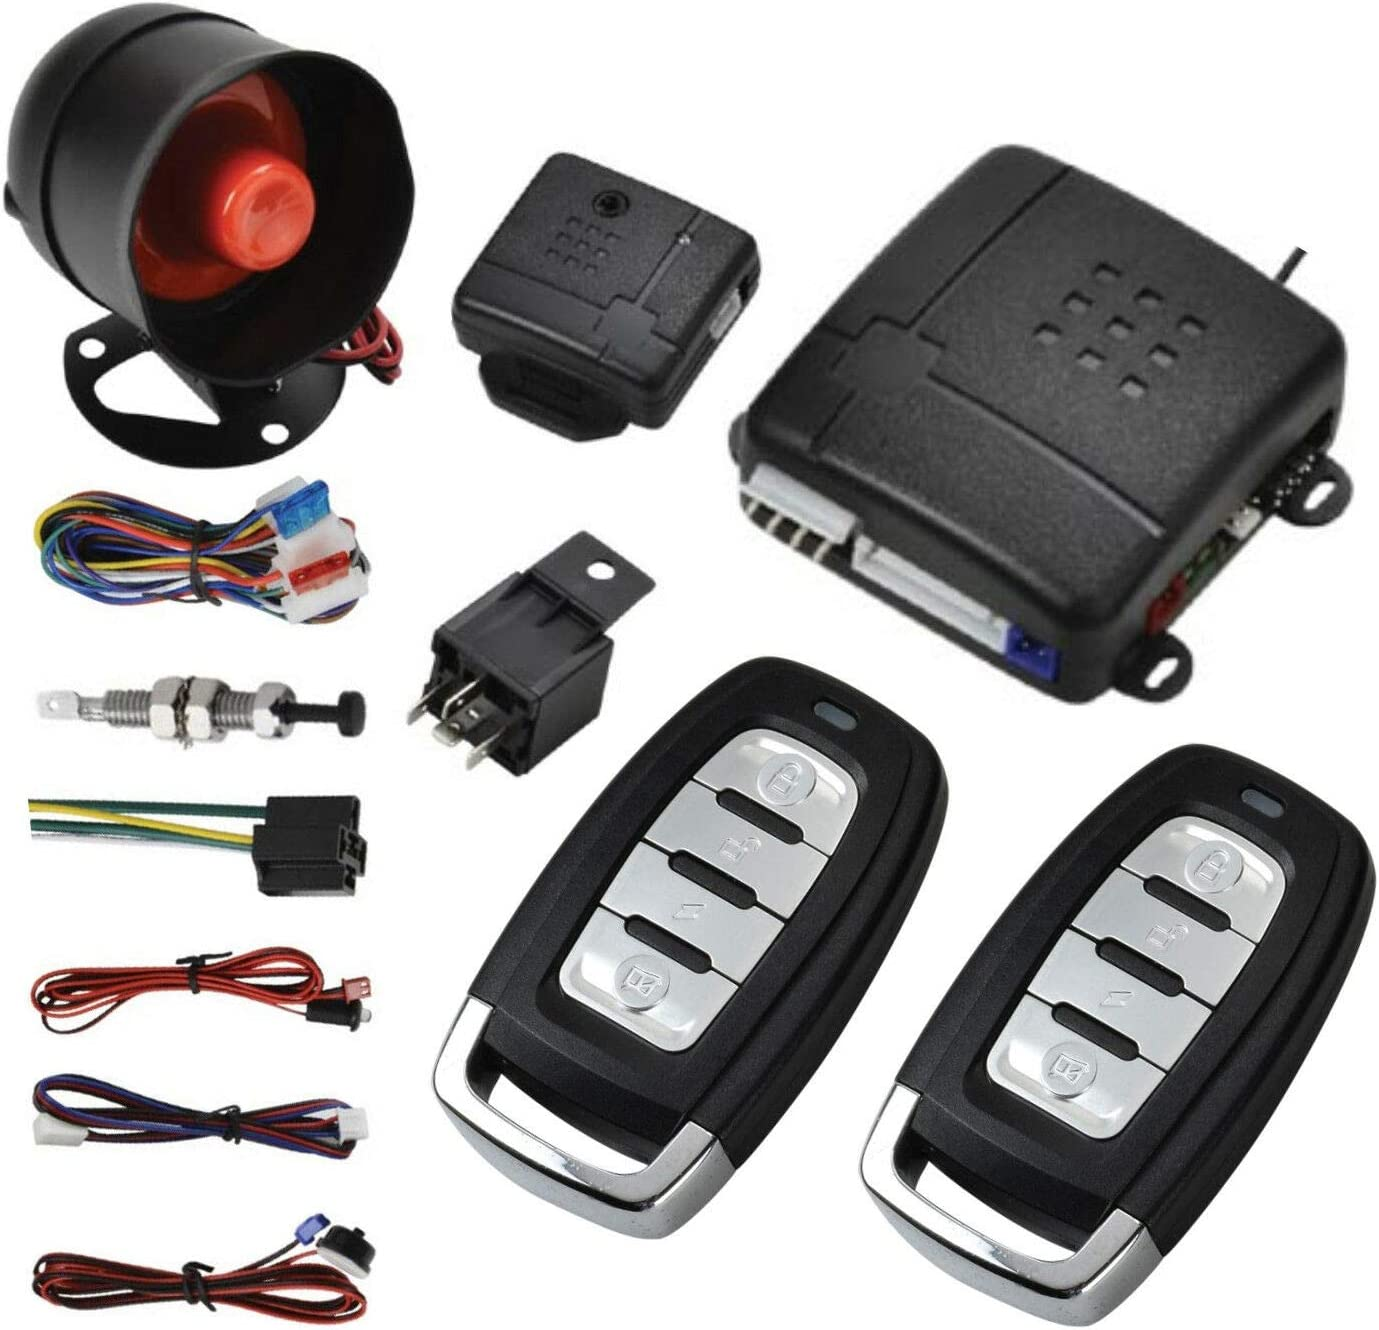 MASO Car Central Lock Universal Auto Remote Vehicle Kit Outlet ☆ Louisville-Jefferson County Mall Free Shipping